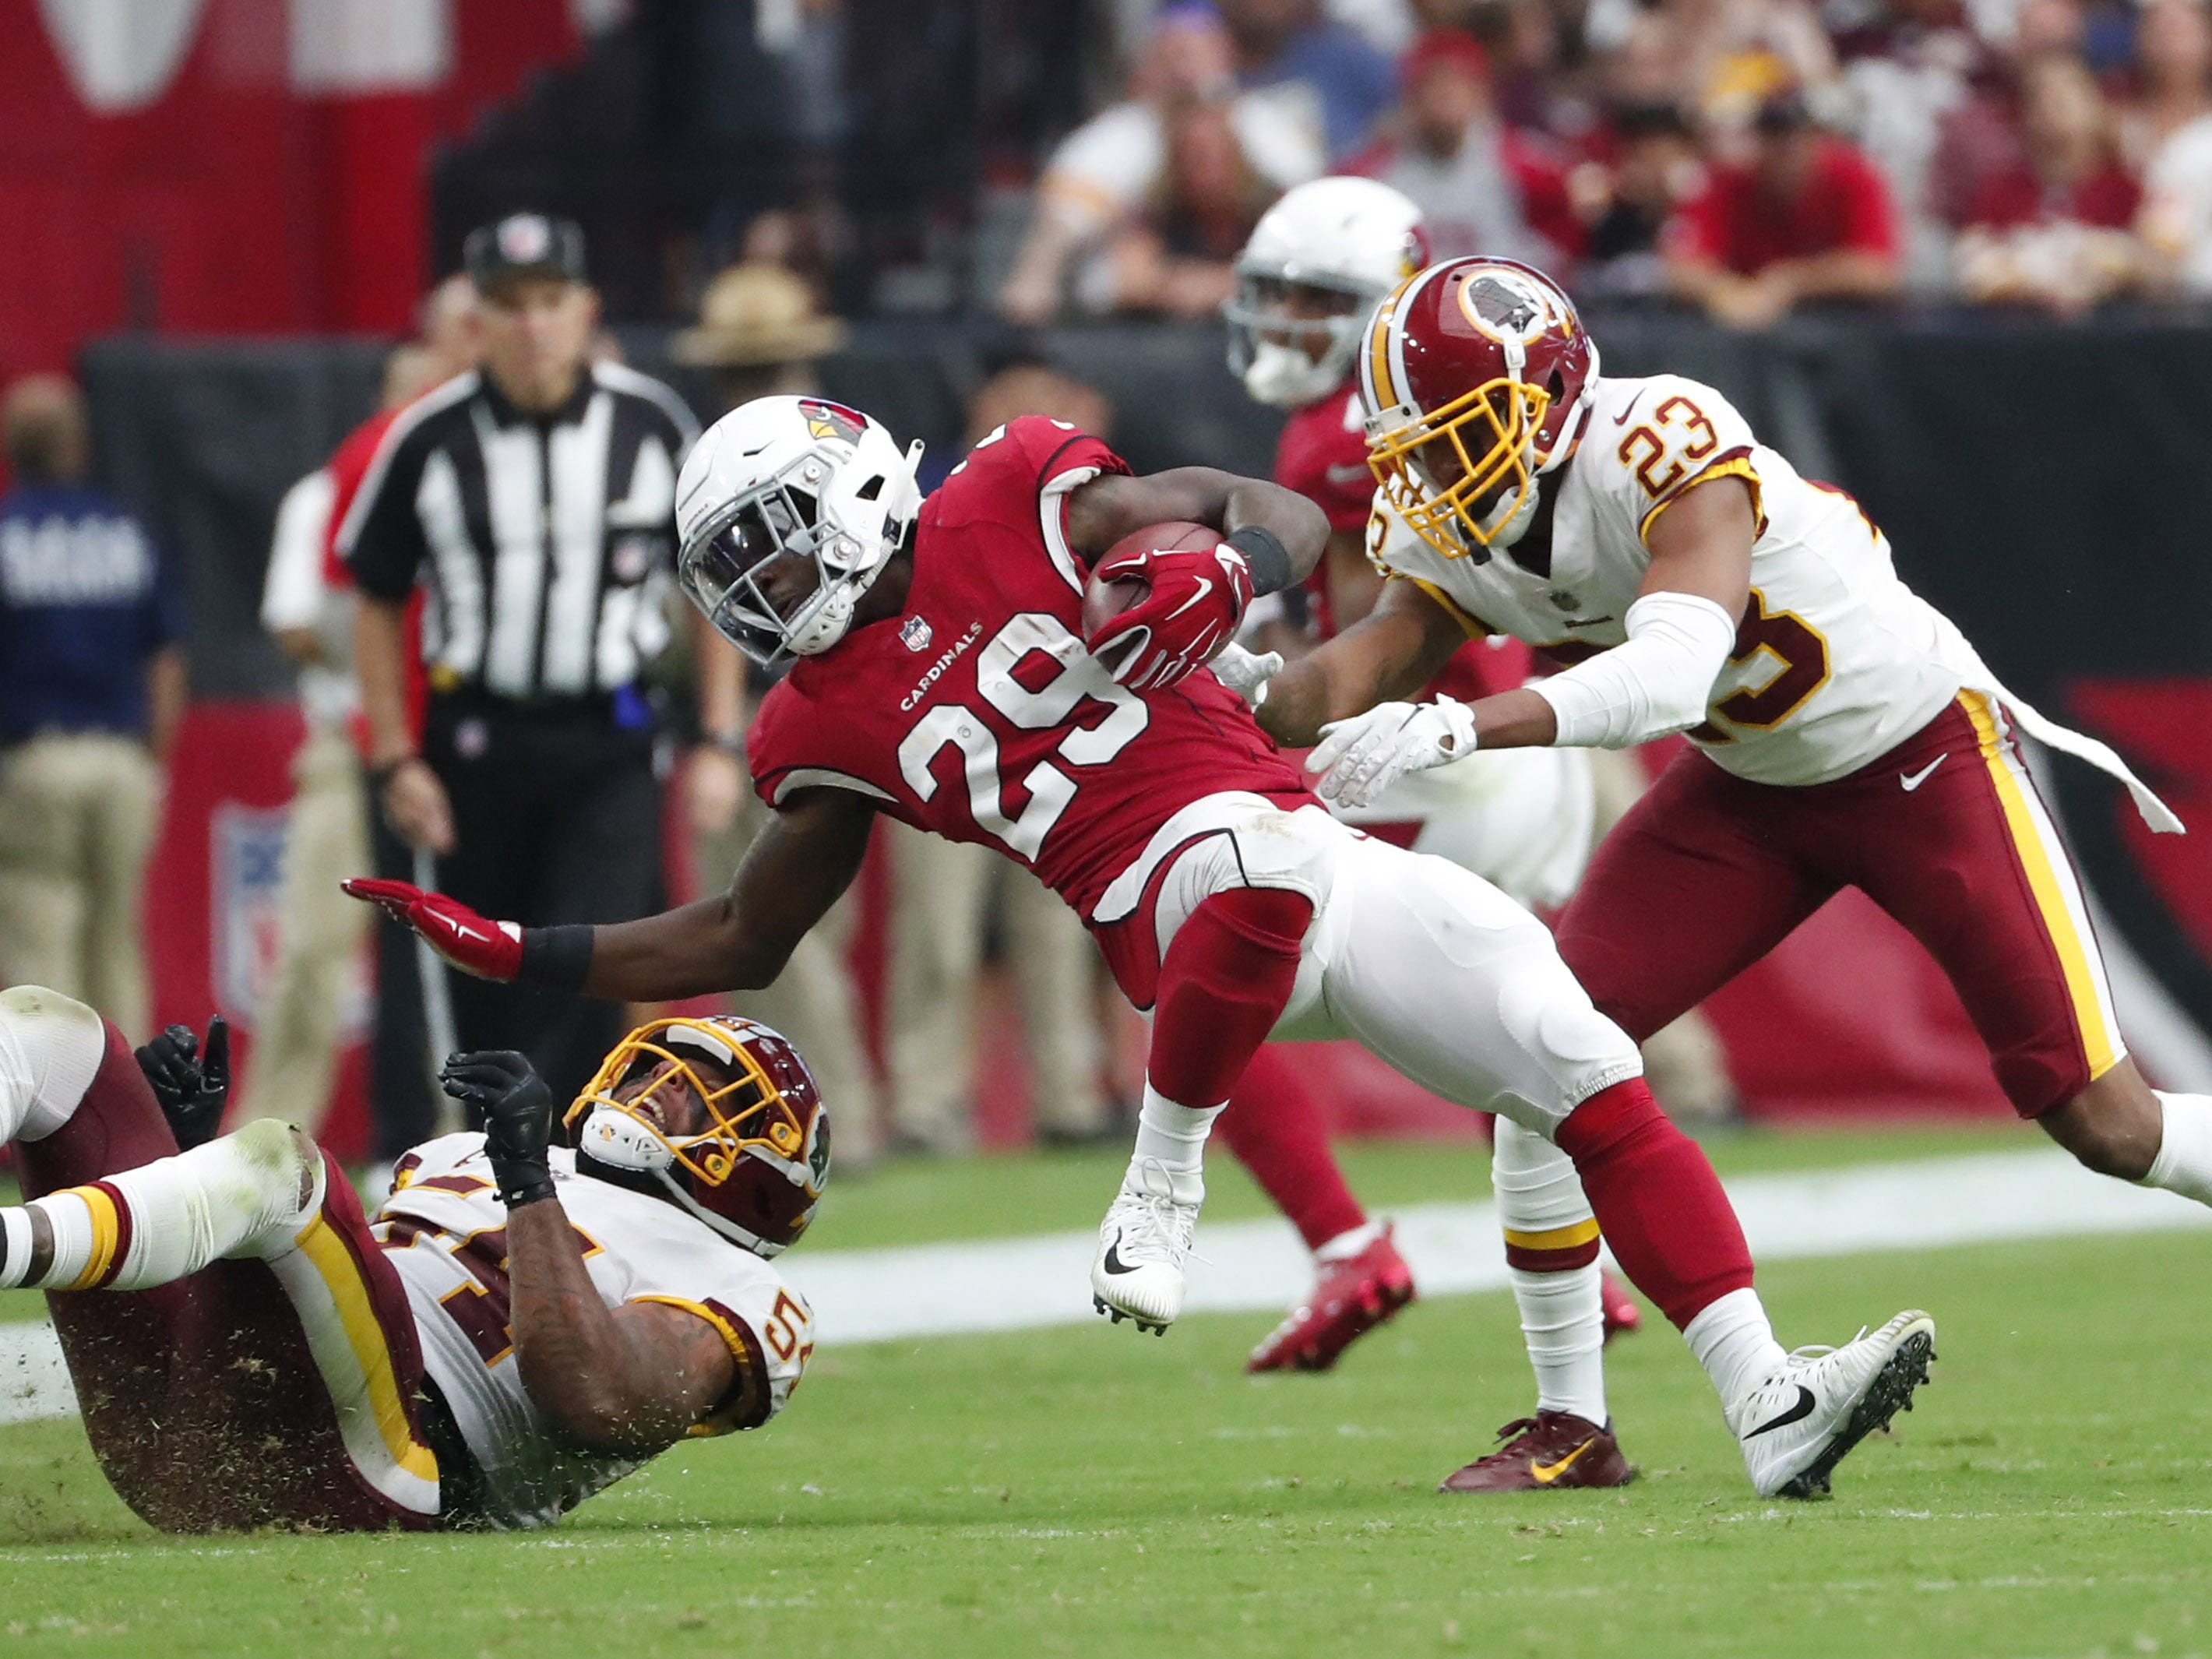 Arizona Cardinals running back Chase Edmonds (29) is tackled by Washington Redskins linebacker Mason Foster (54) and cornerback Quinton Dunbar (23) during the fourth quarter at State Farm Stadium in Glendale, Ariz. September 9. 2018.